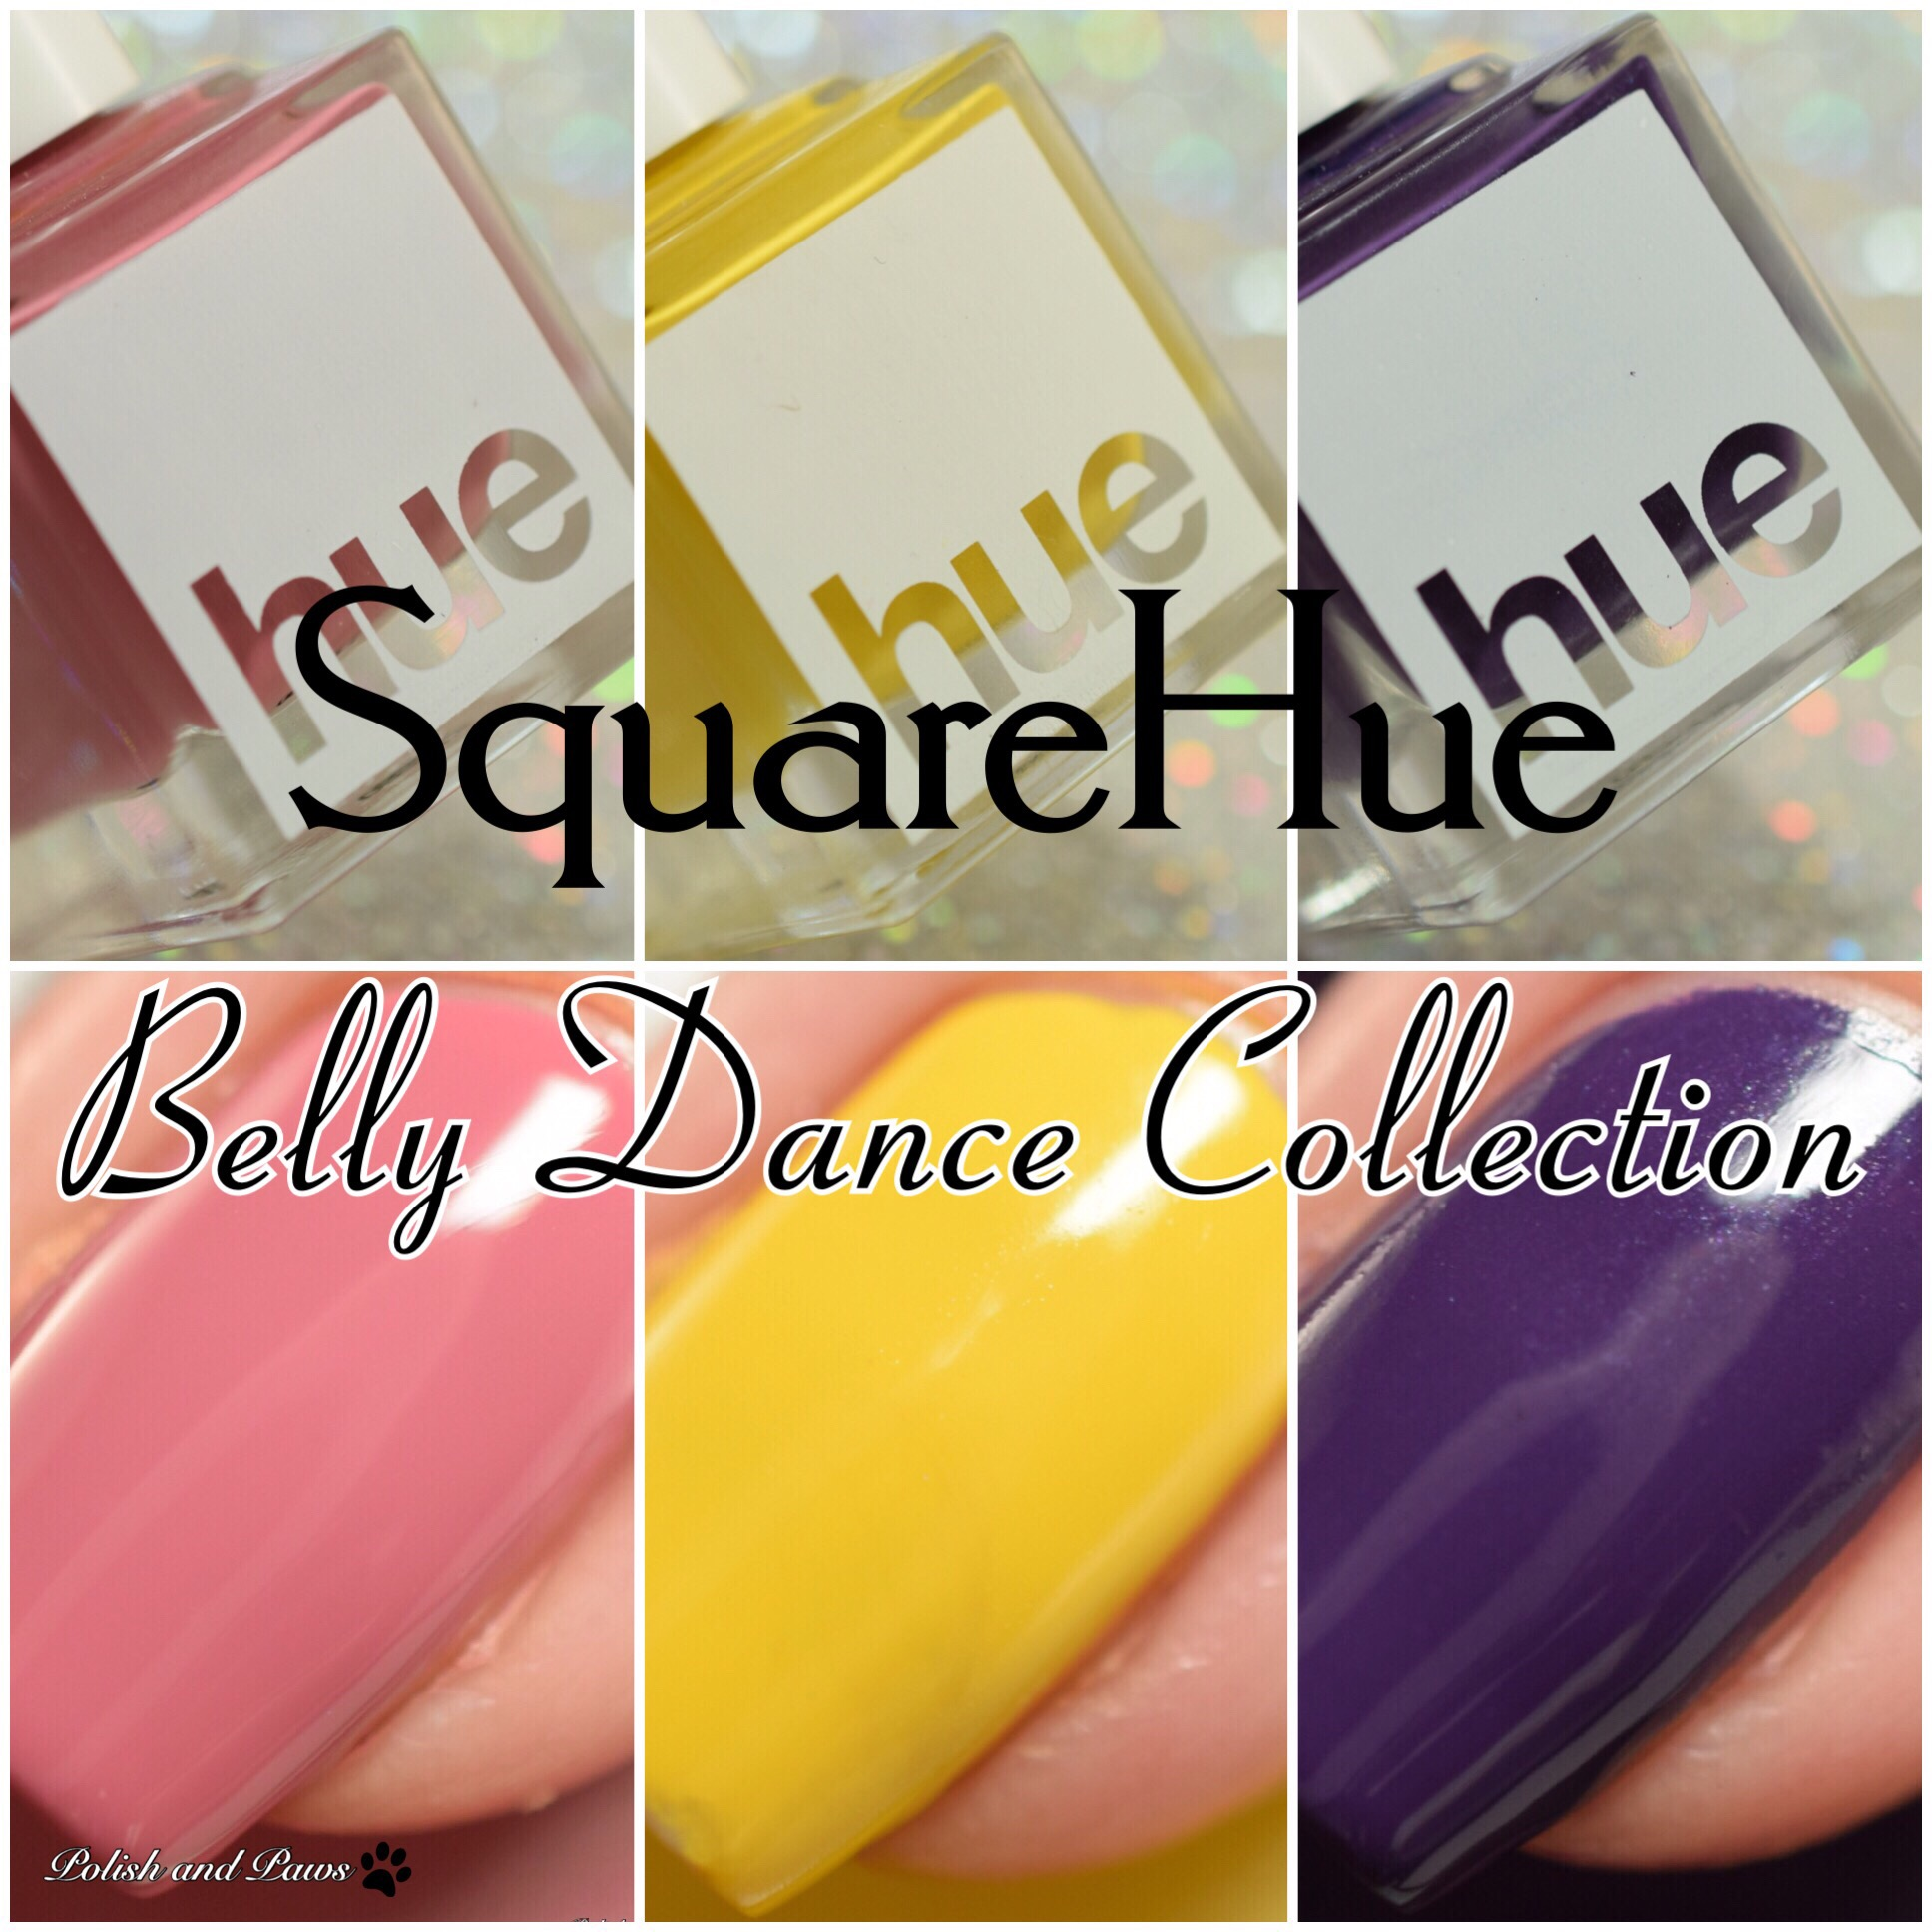 Square Hue Belly Dance Collection September 2017